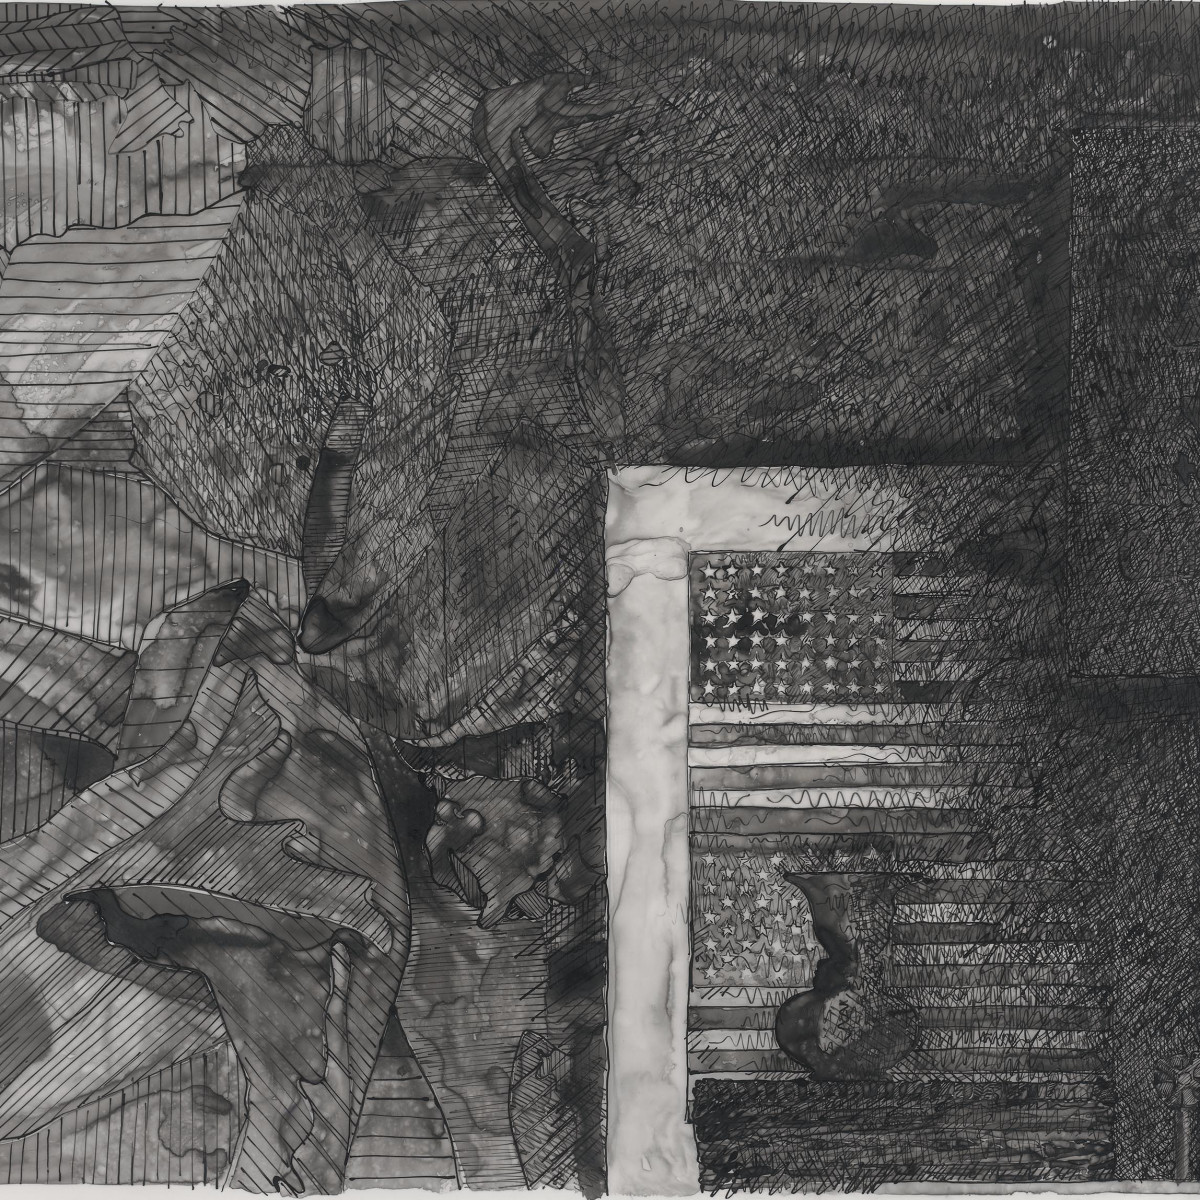 Jasper Johns, Untitled, 1984